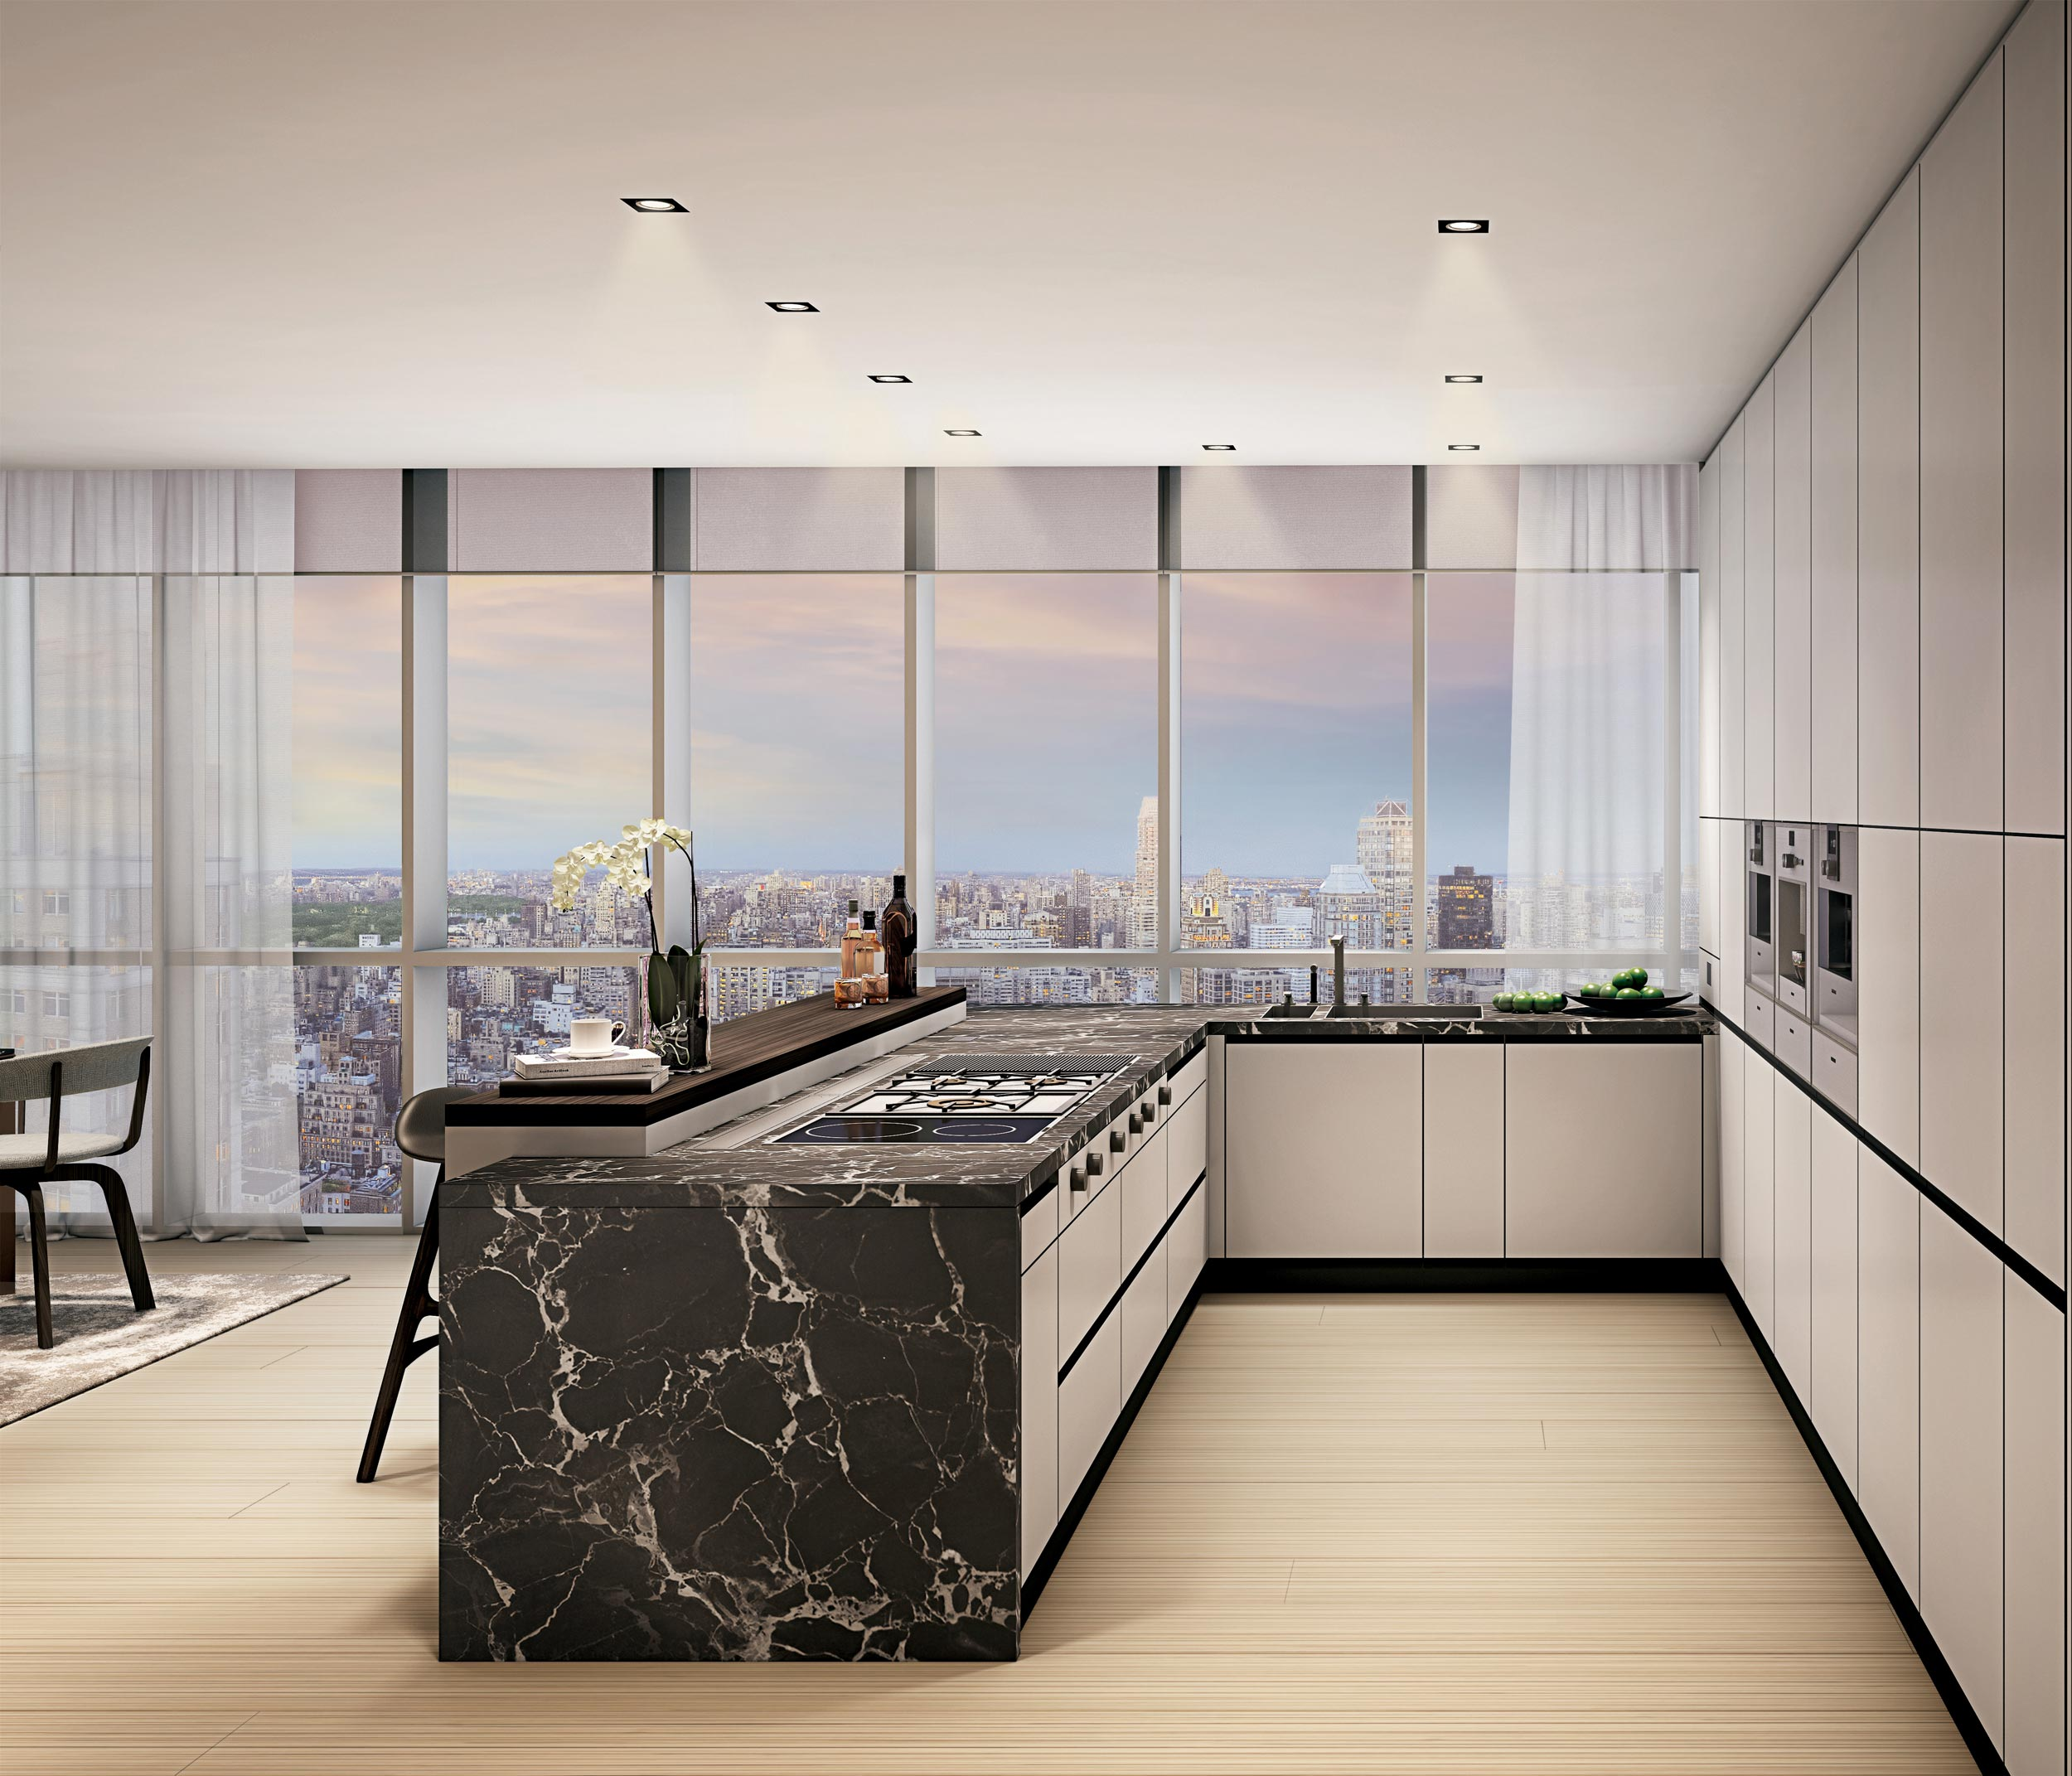 118 East 59th Street, image by Williams New York